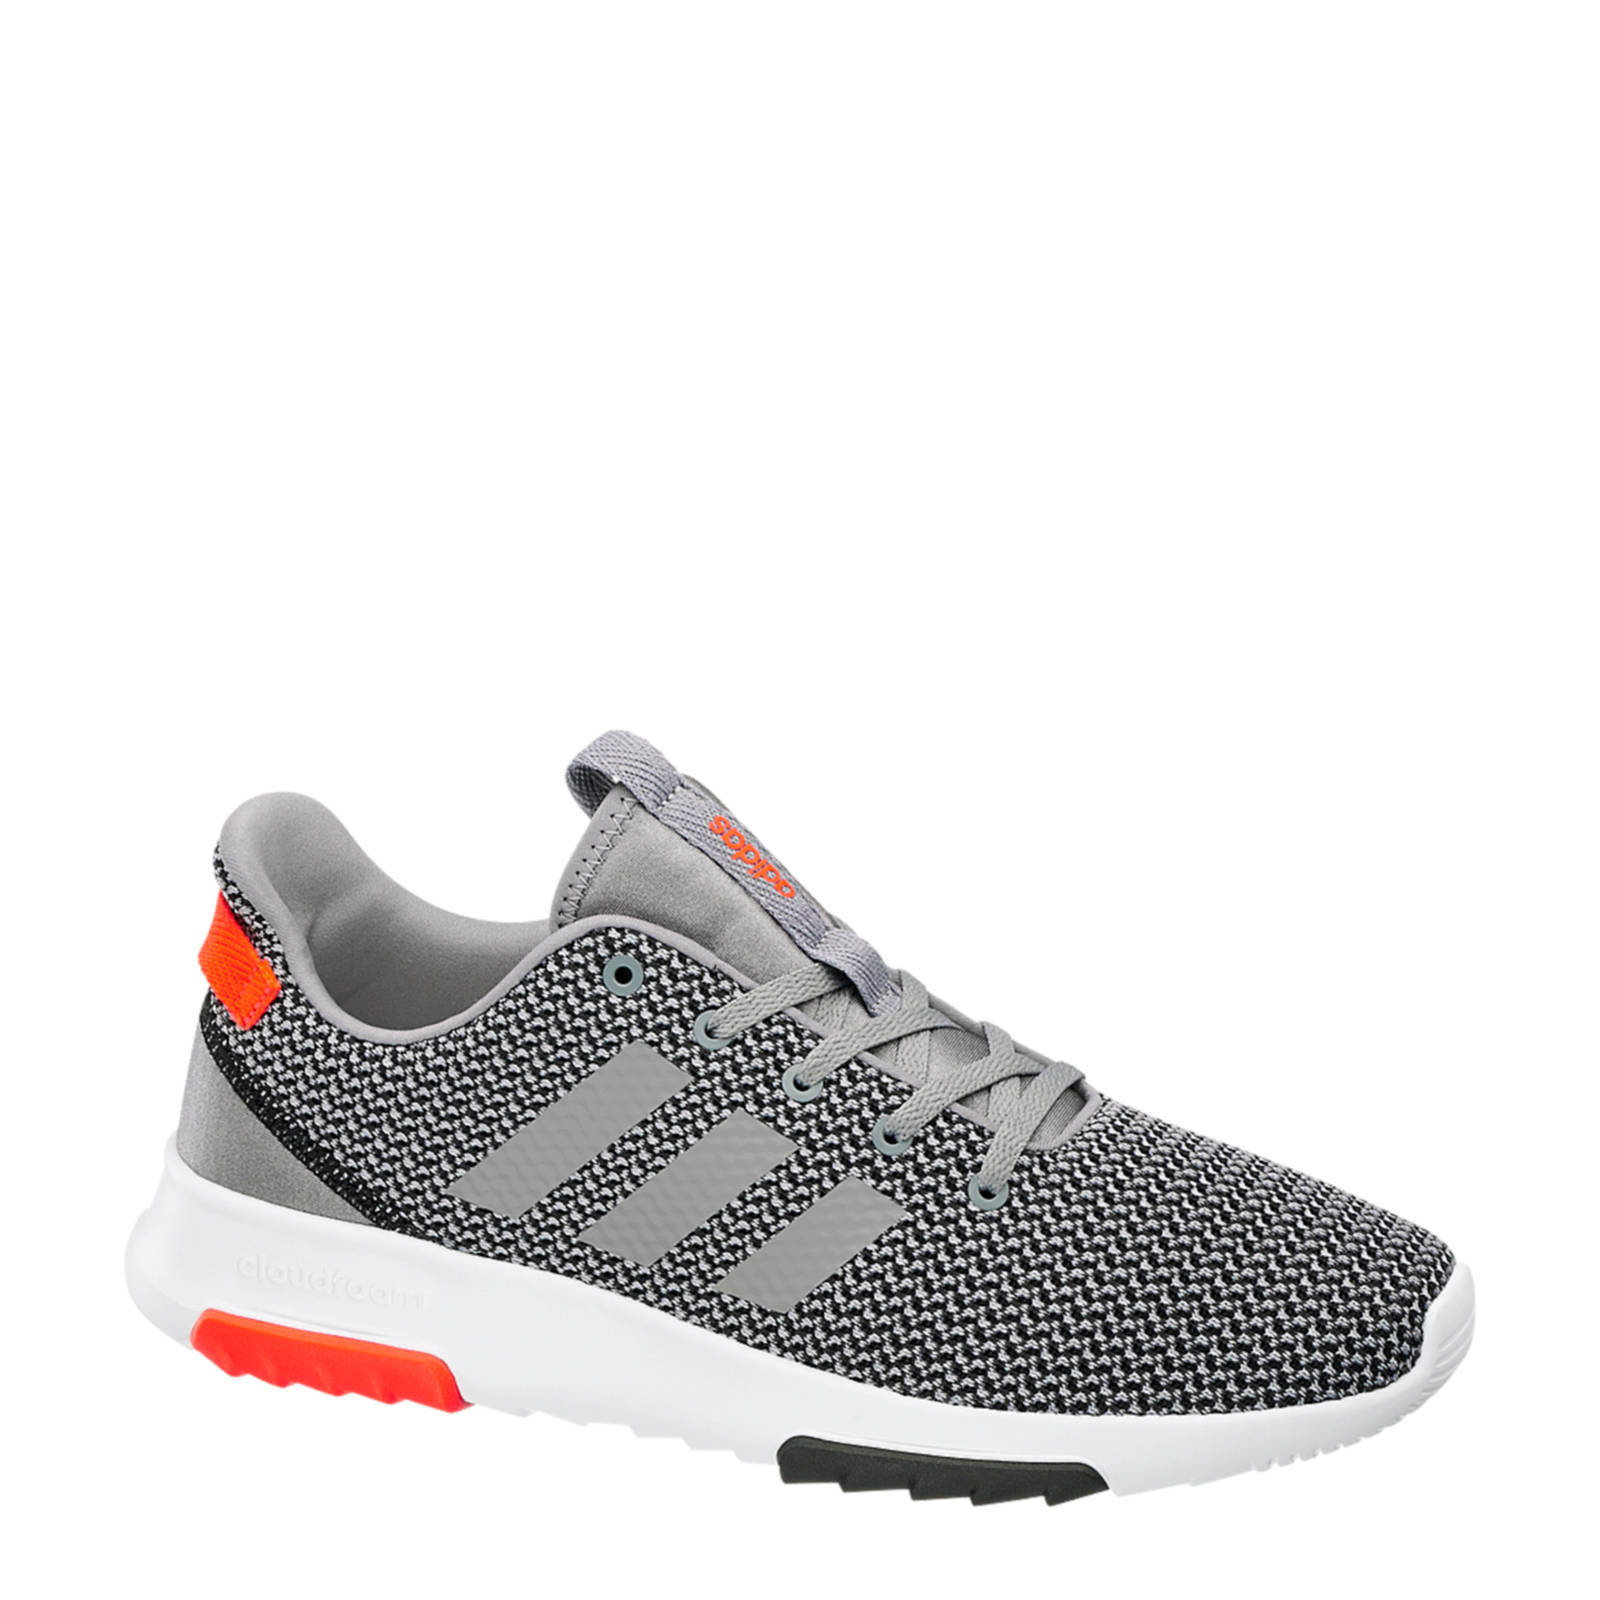 adidas neo racer tr kinder